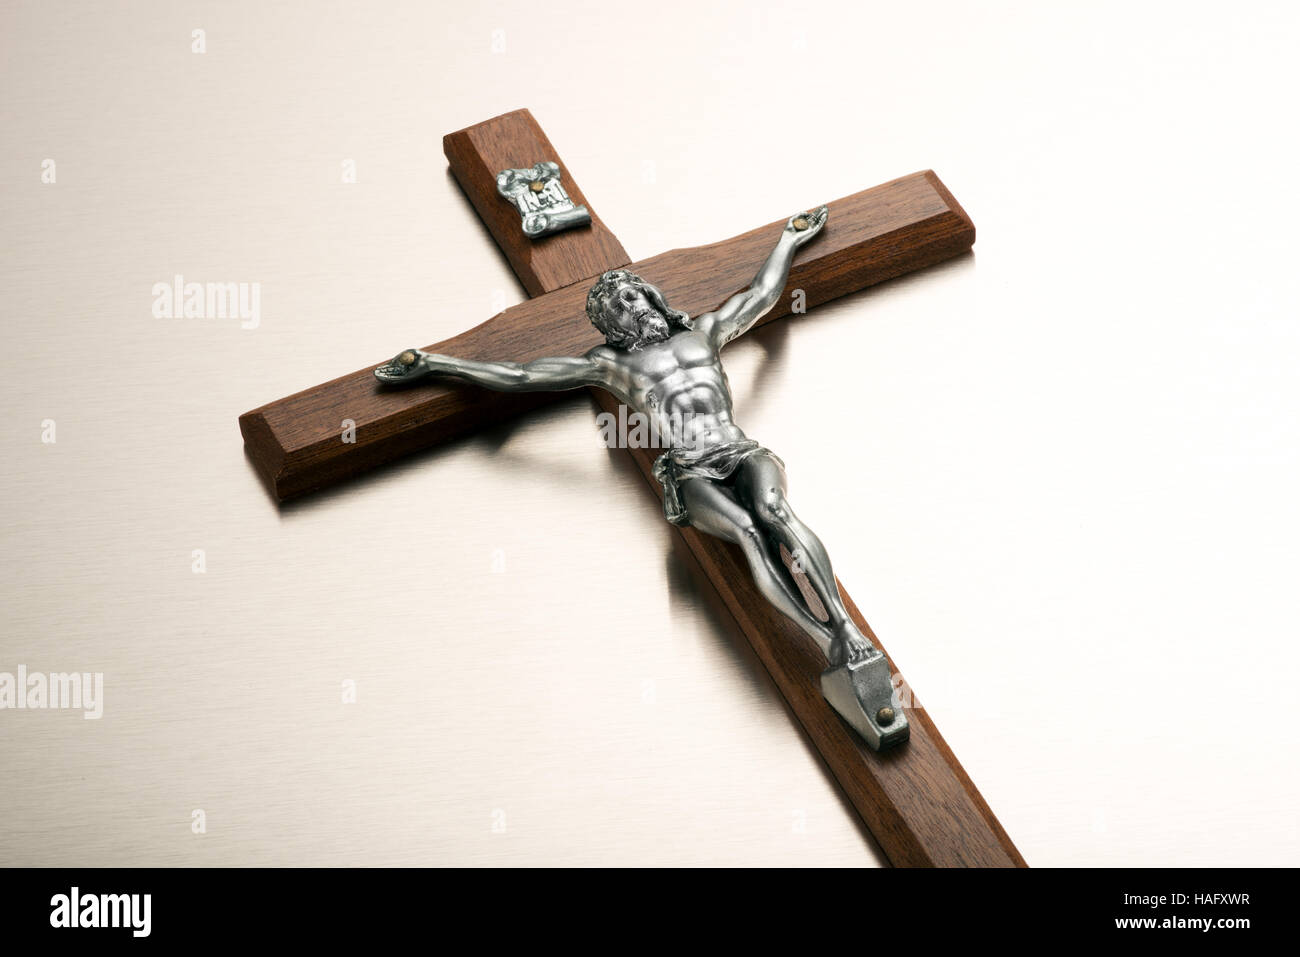 Silver metal figure of the crucified Christ on a wooden crucifix viewed low angle on white with copy space for Easter - Stock Image